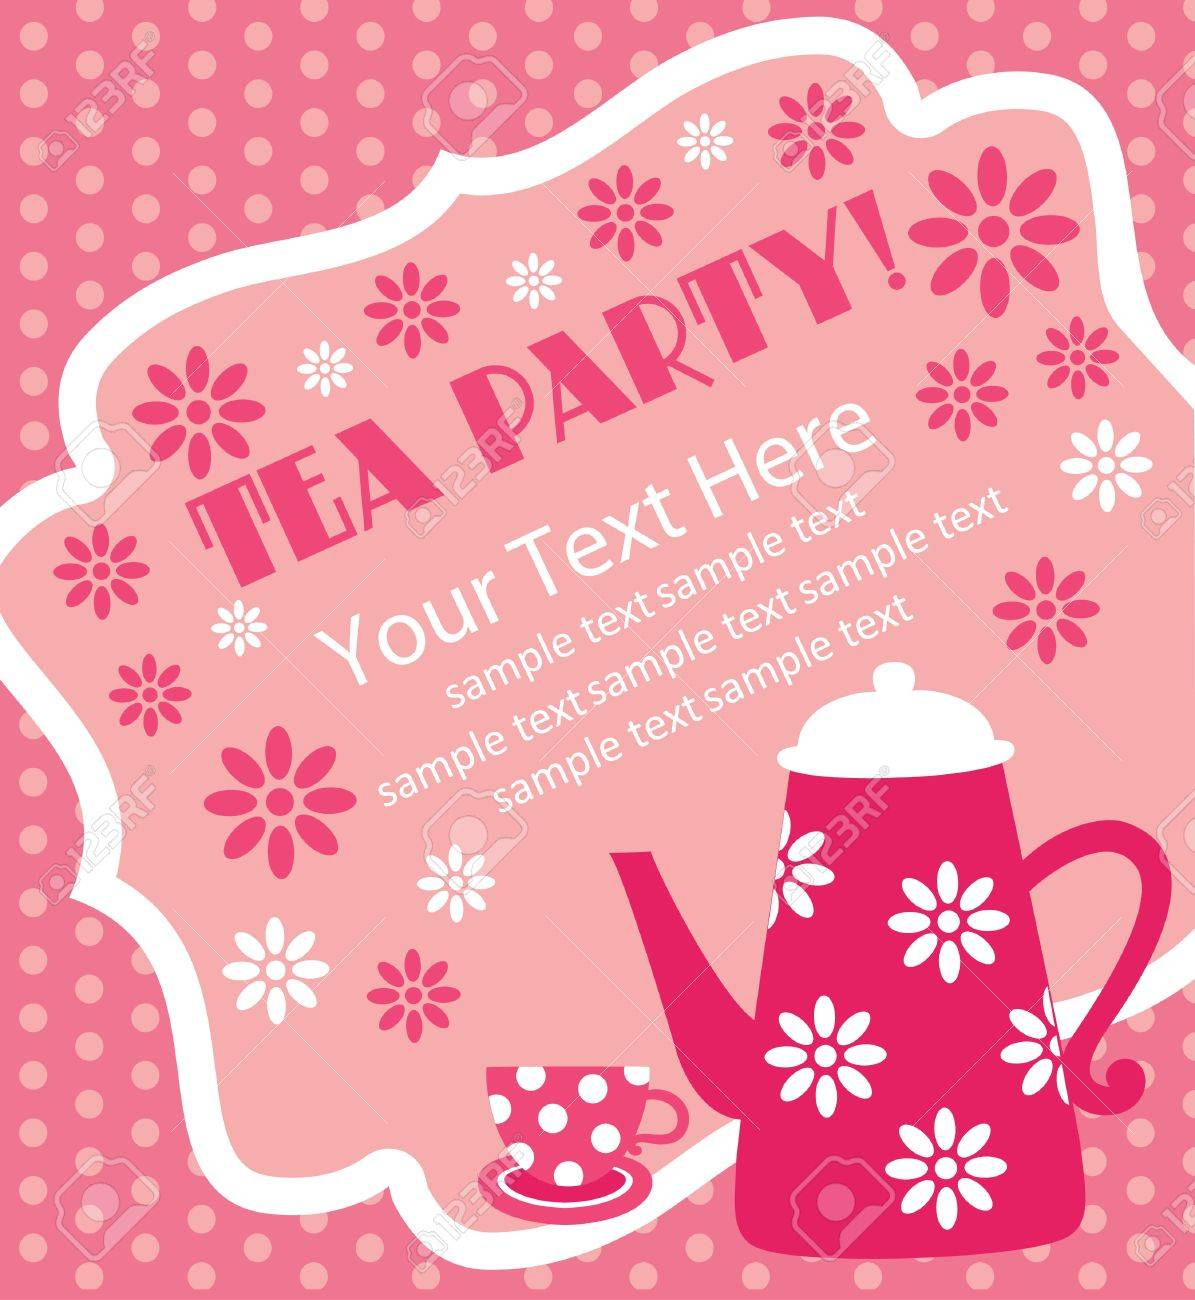 Tea party background royalty free stock photo image 28839215 - Jpg 1195x1300 Tea Party Background